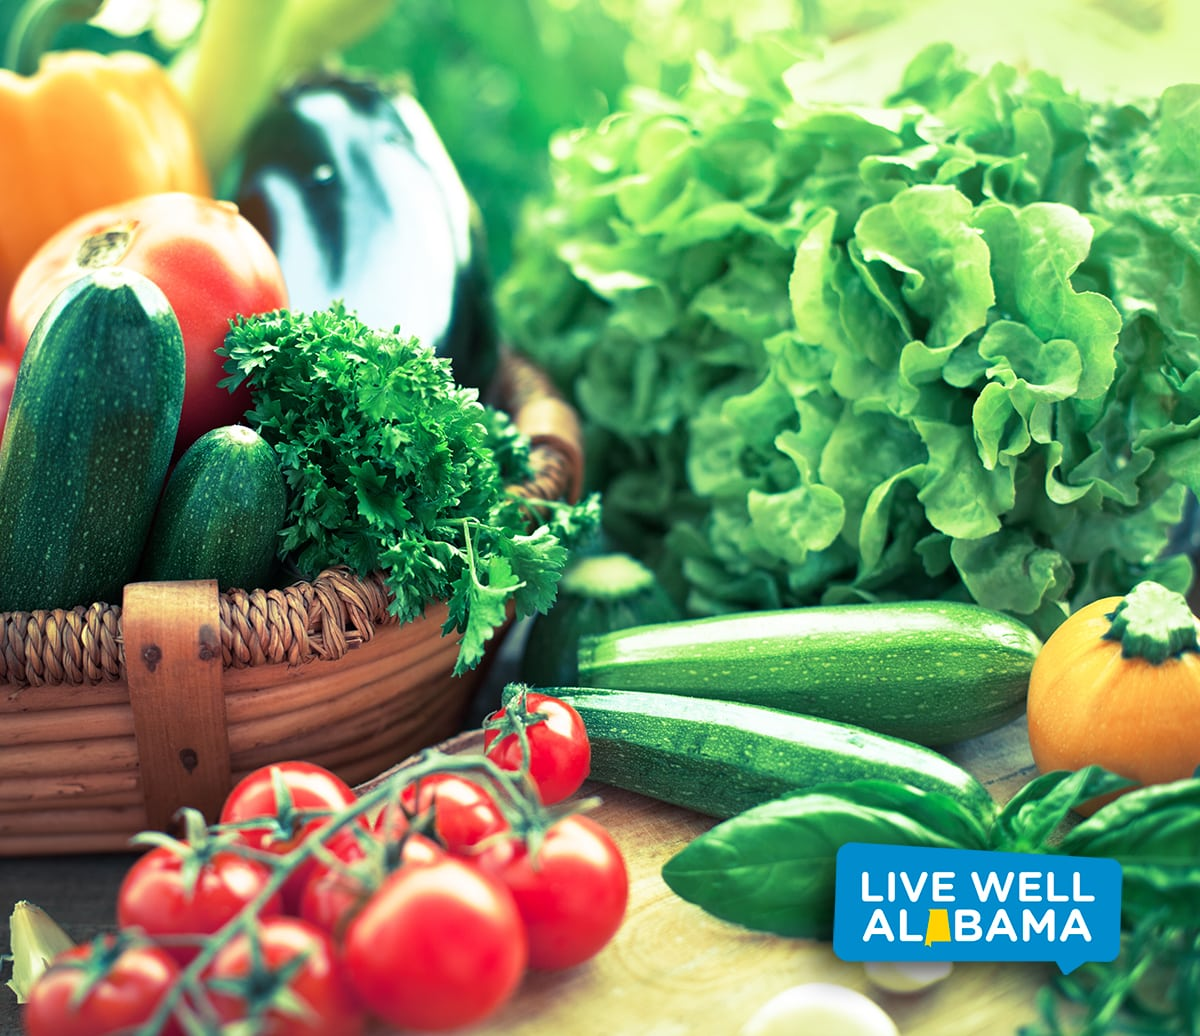 Freshness vegetables; Live Well Alabama logo for social media